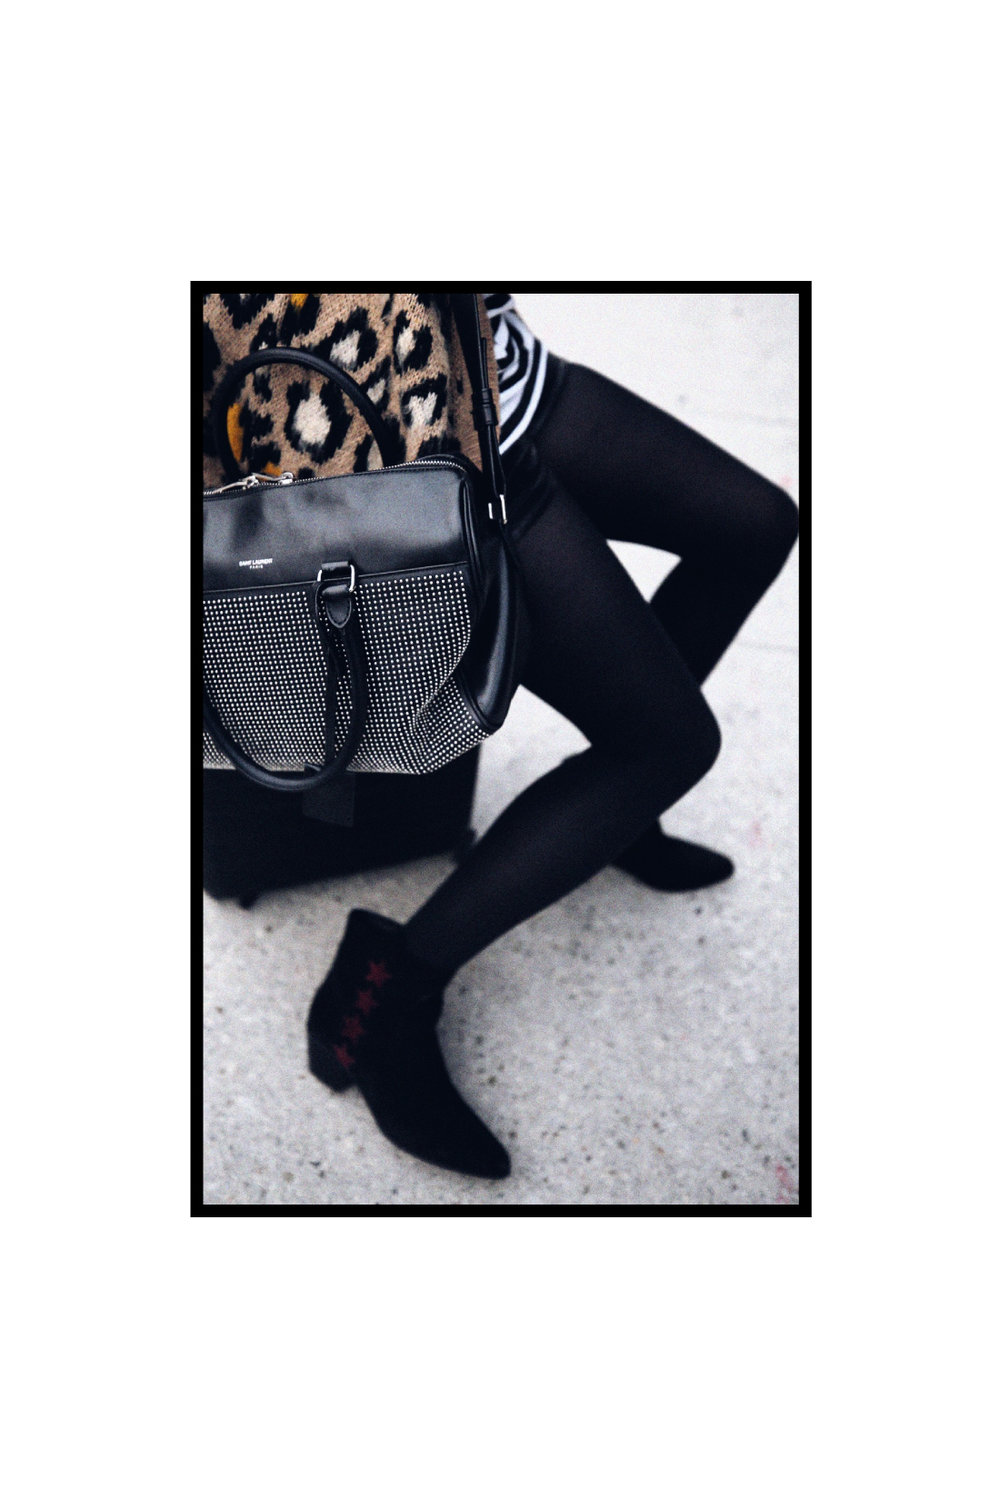 saint laurent studded duffle by hedi slimane, leopard print cardigan, striped tshirt, edie sedwick inspired, away luggage carry on, saint laurent star cowboy boots  - woahstyle.com 9.jpg